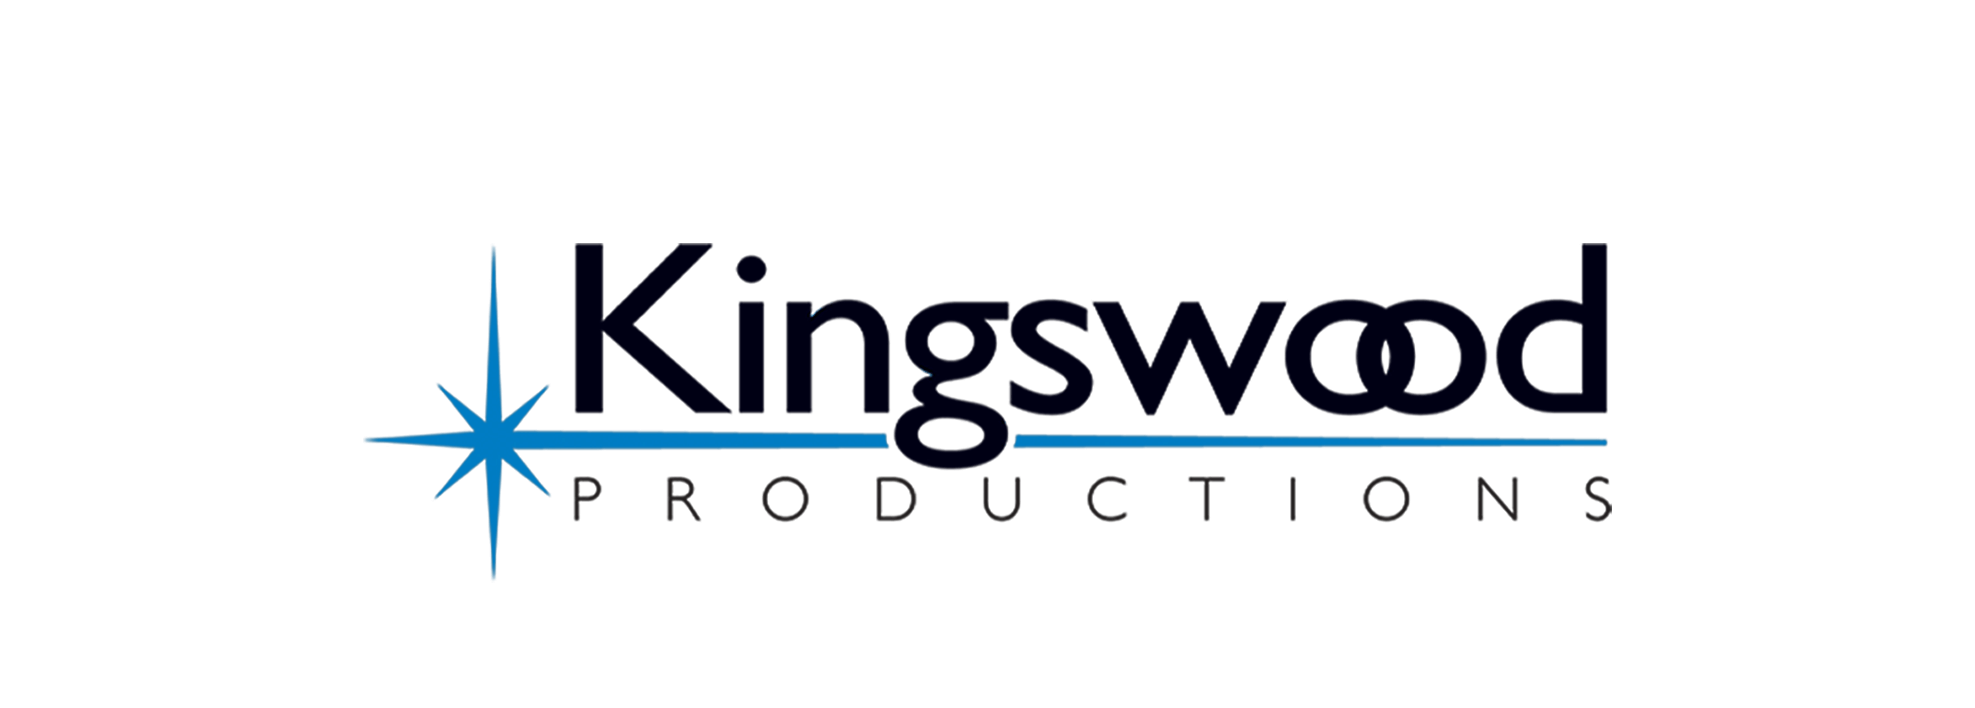 Kingswood Productions is a full-service video, audio, and post production studio in Nashville, Tenn.